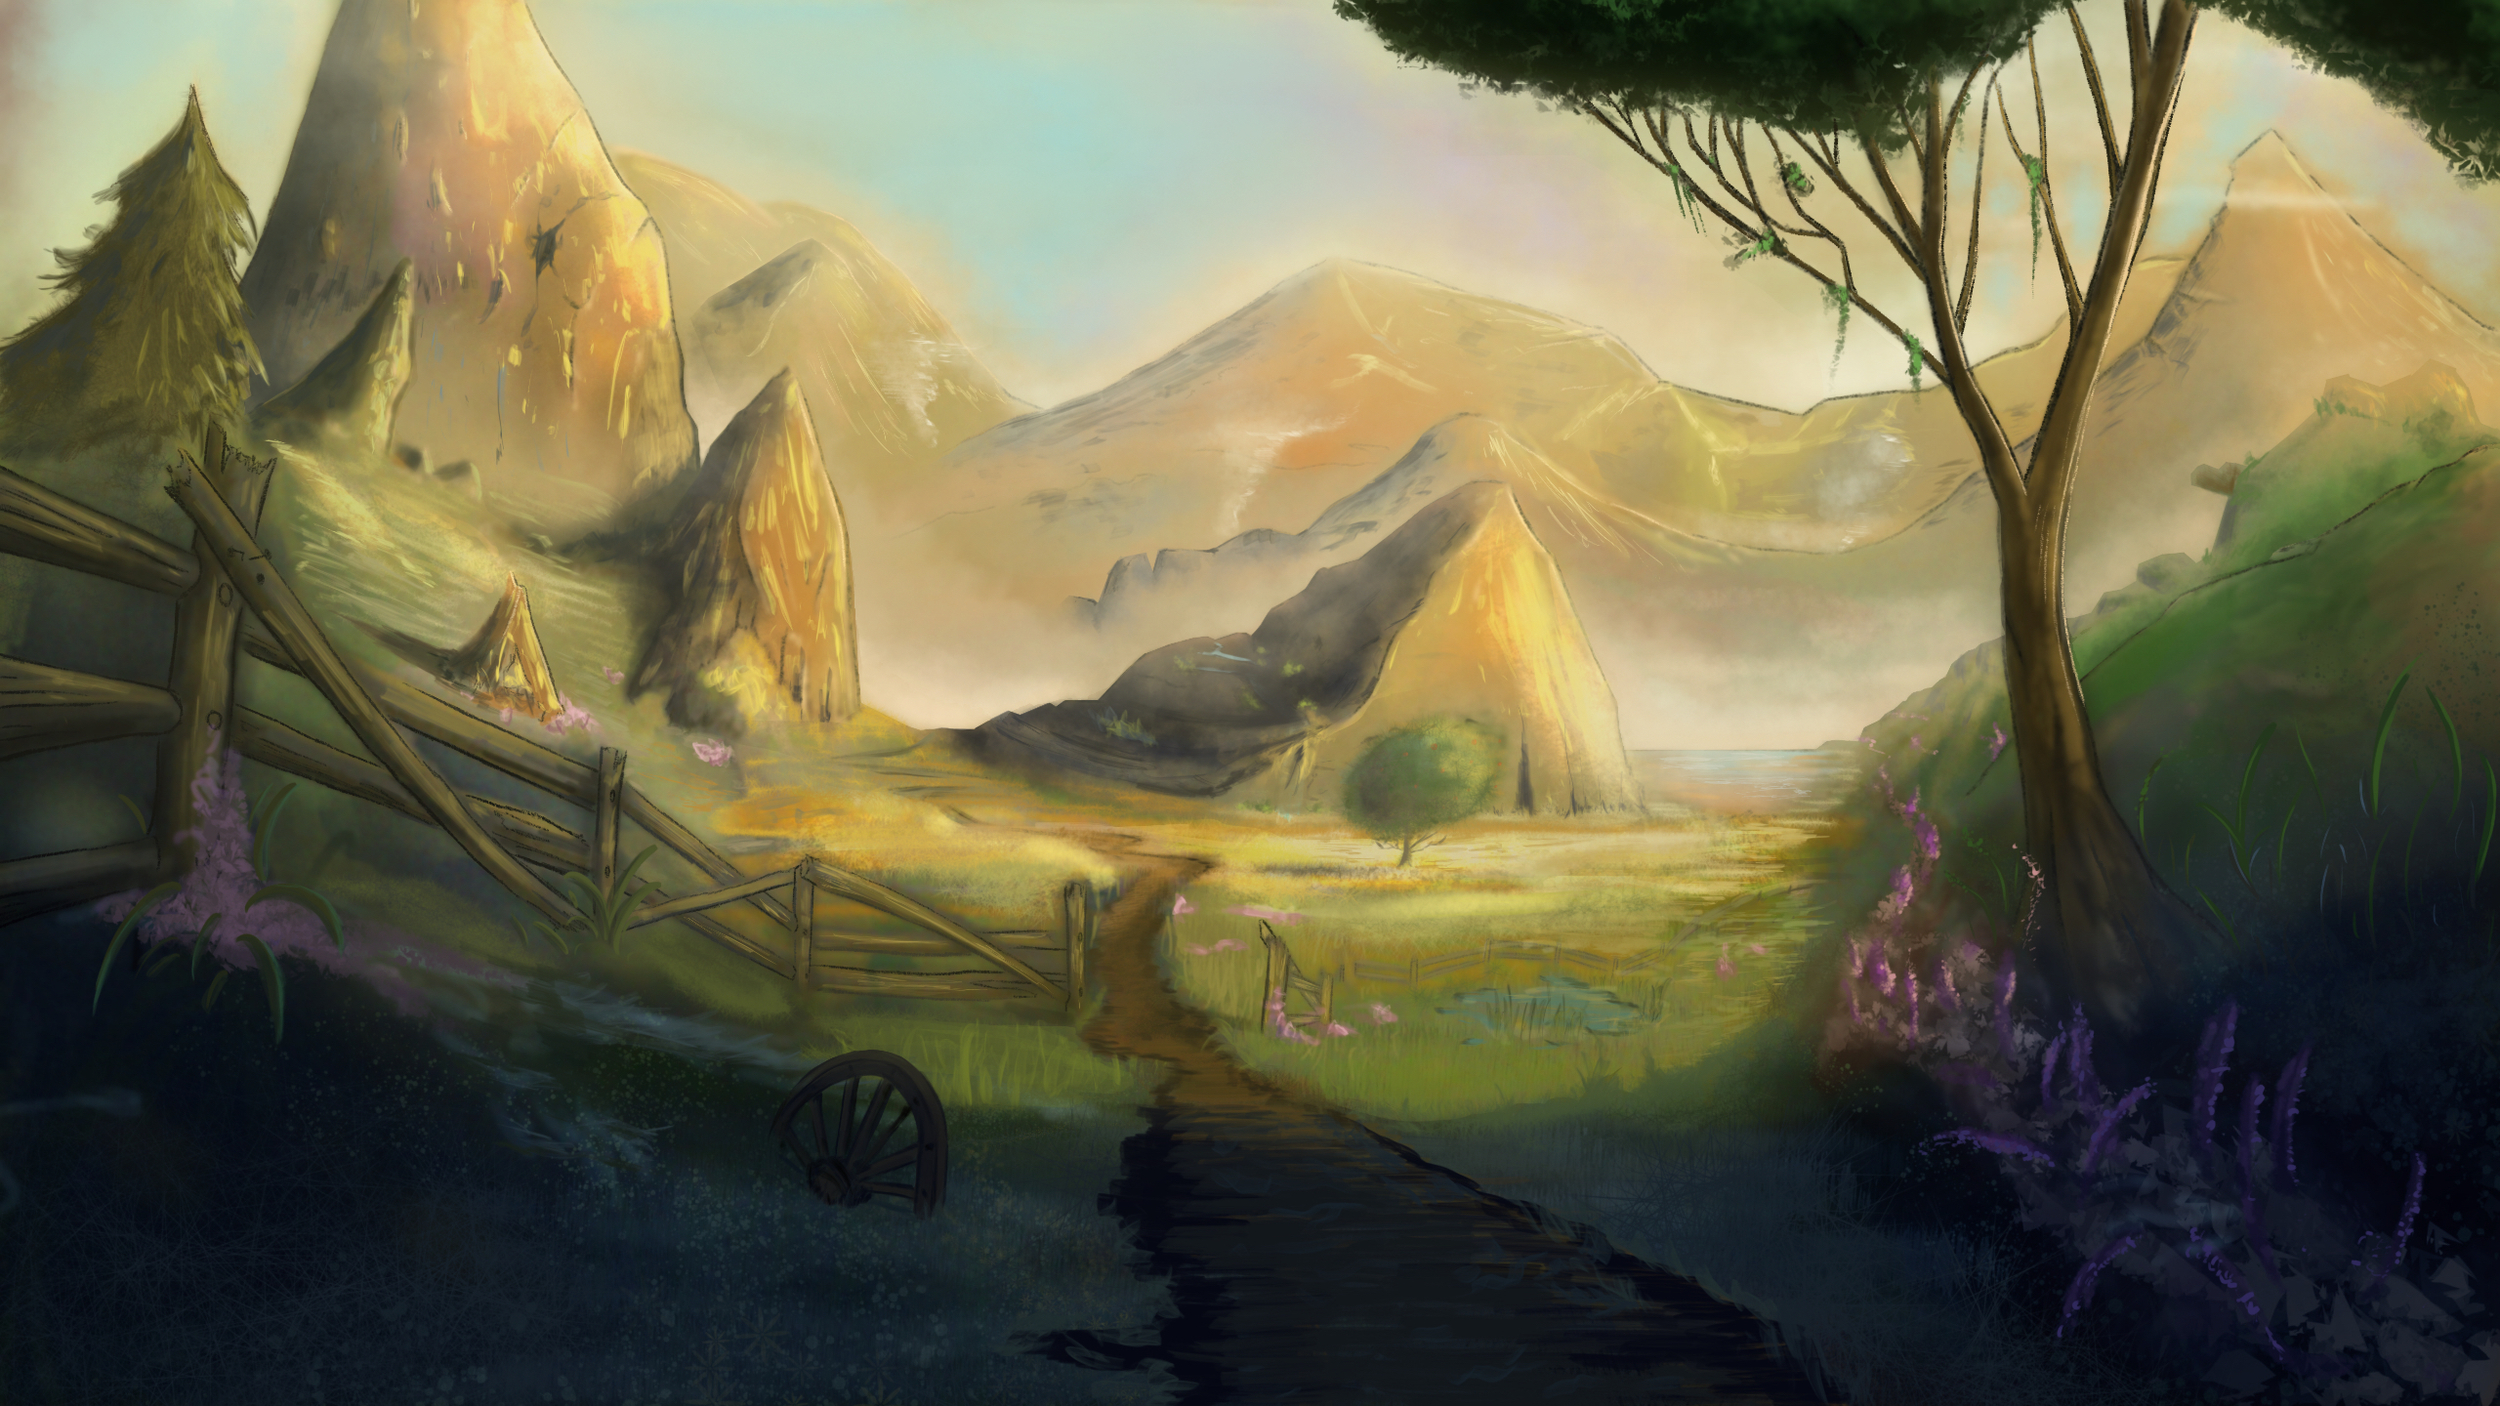 BG_05_MountainValley_ScottMLee.jpg